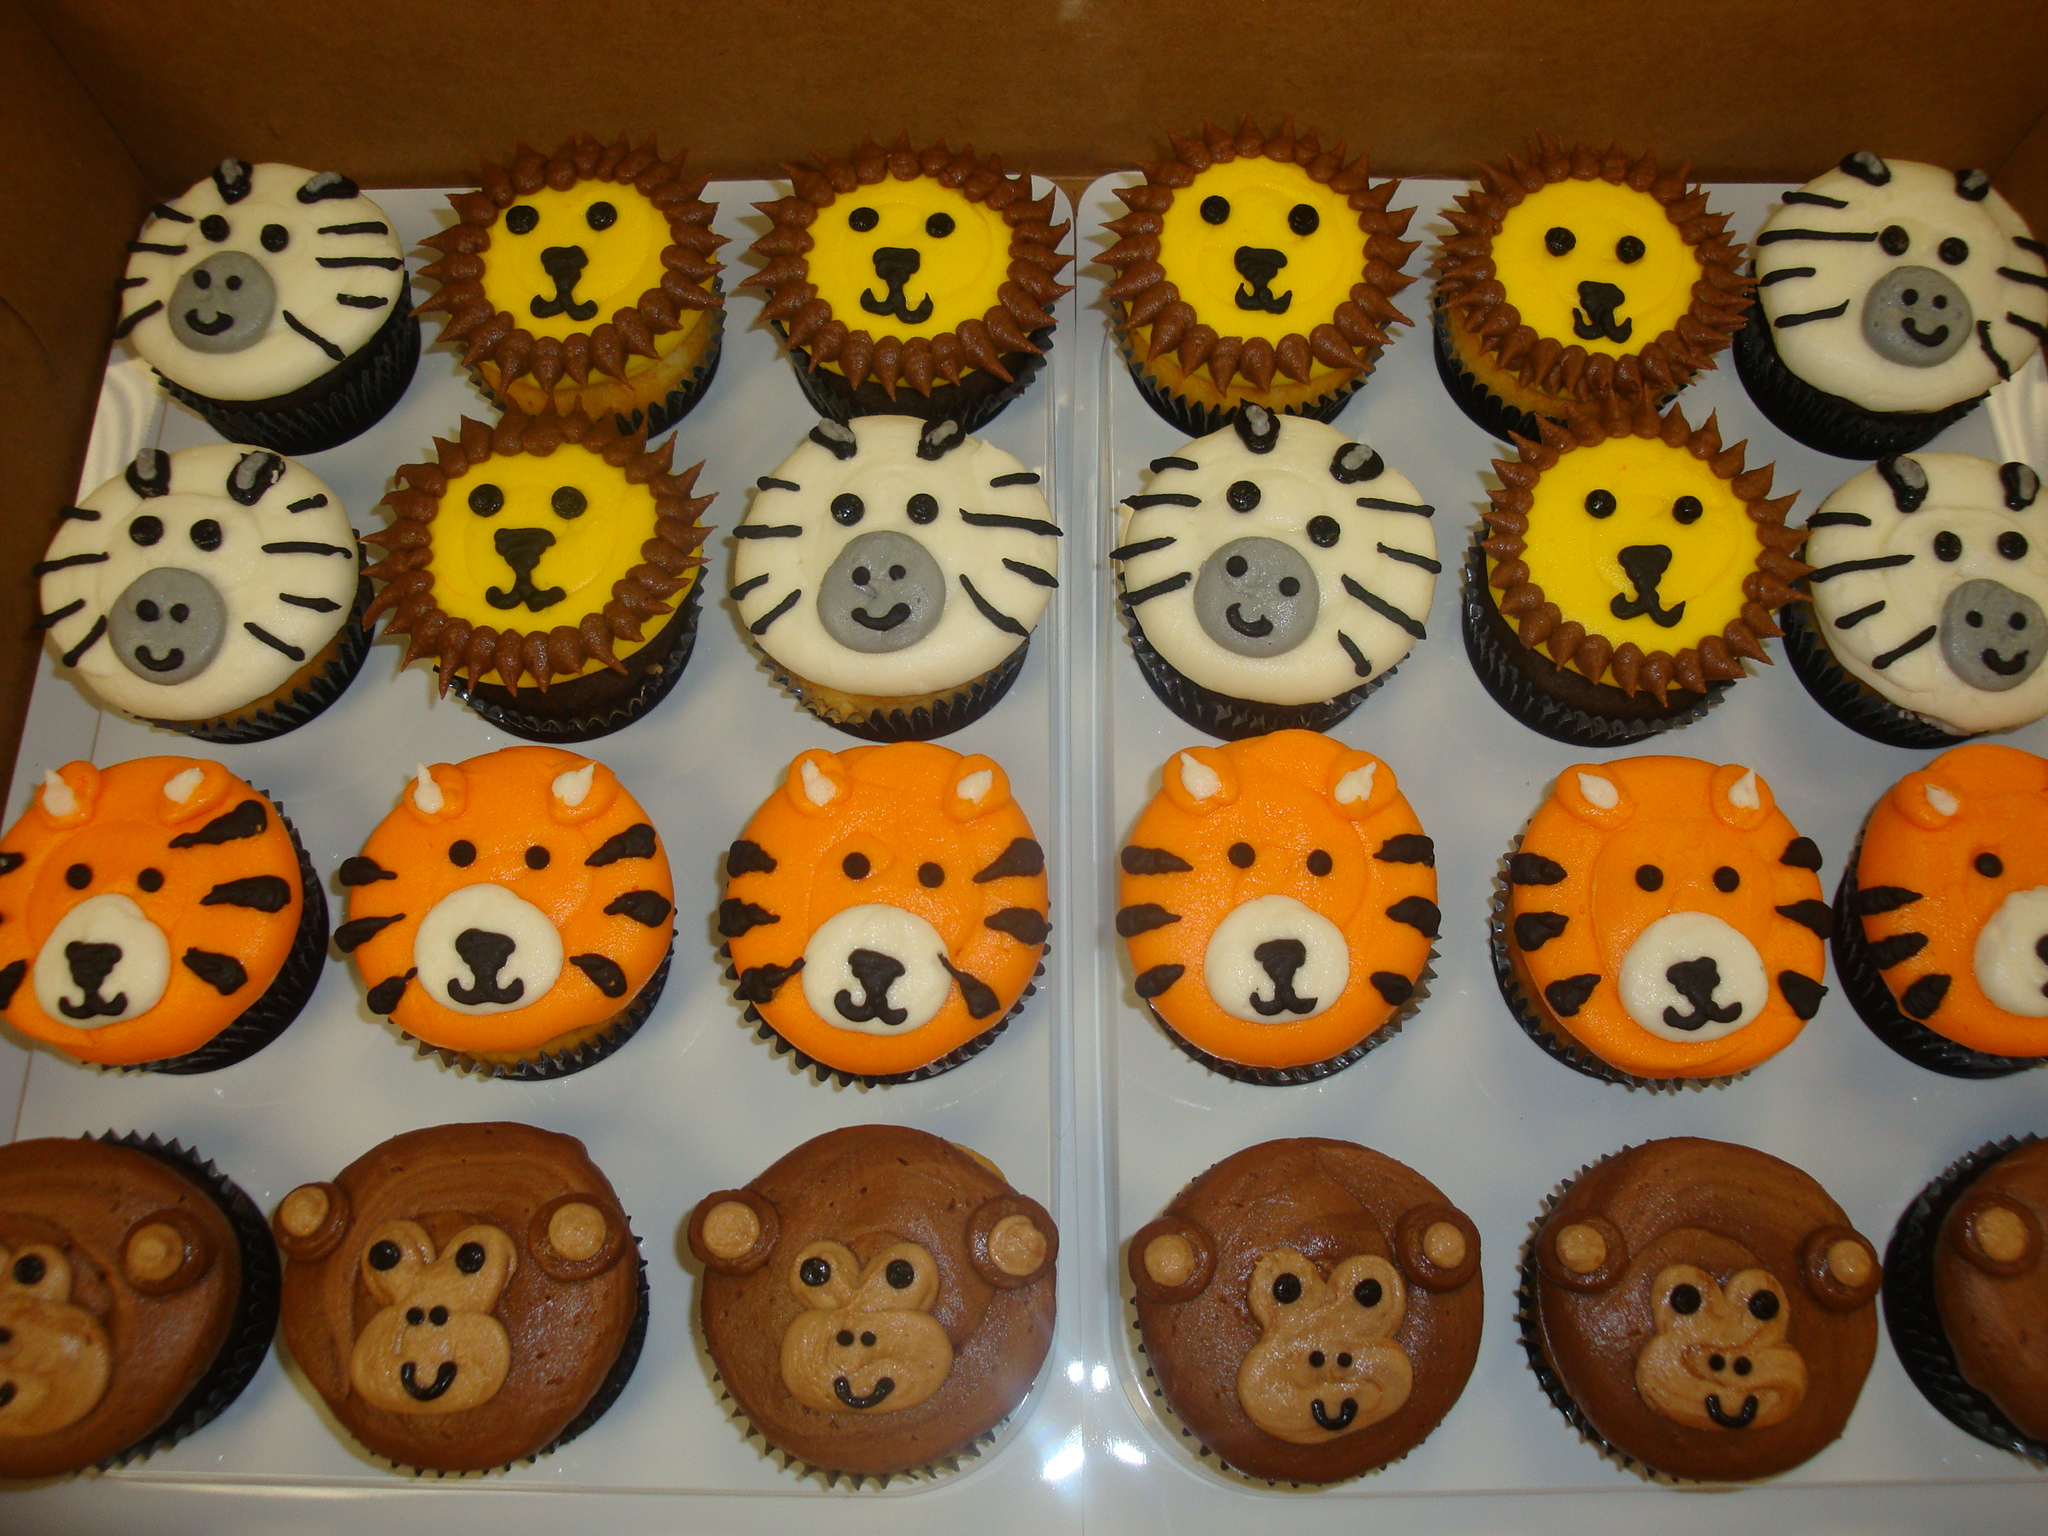 animal face cupcakes $3.50 each